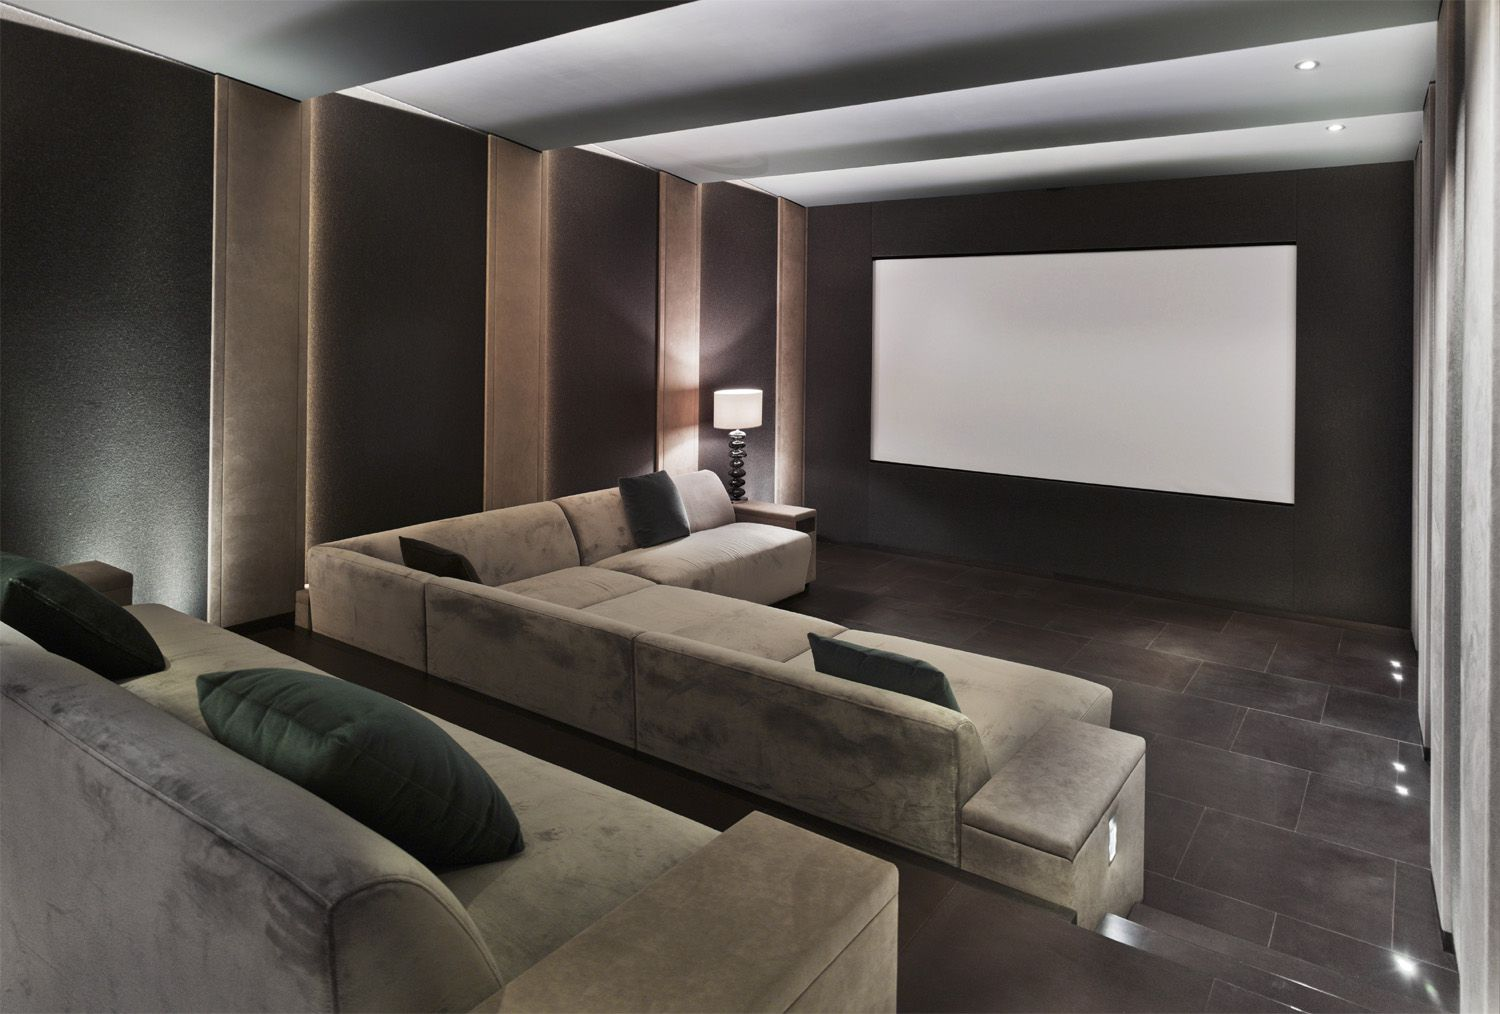 Home theater system planning what you need to know Home theatre room design ideas in india